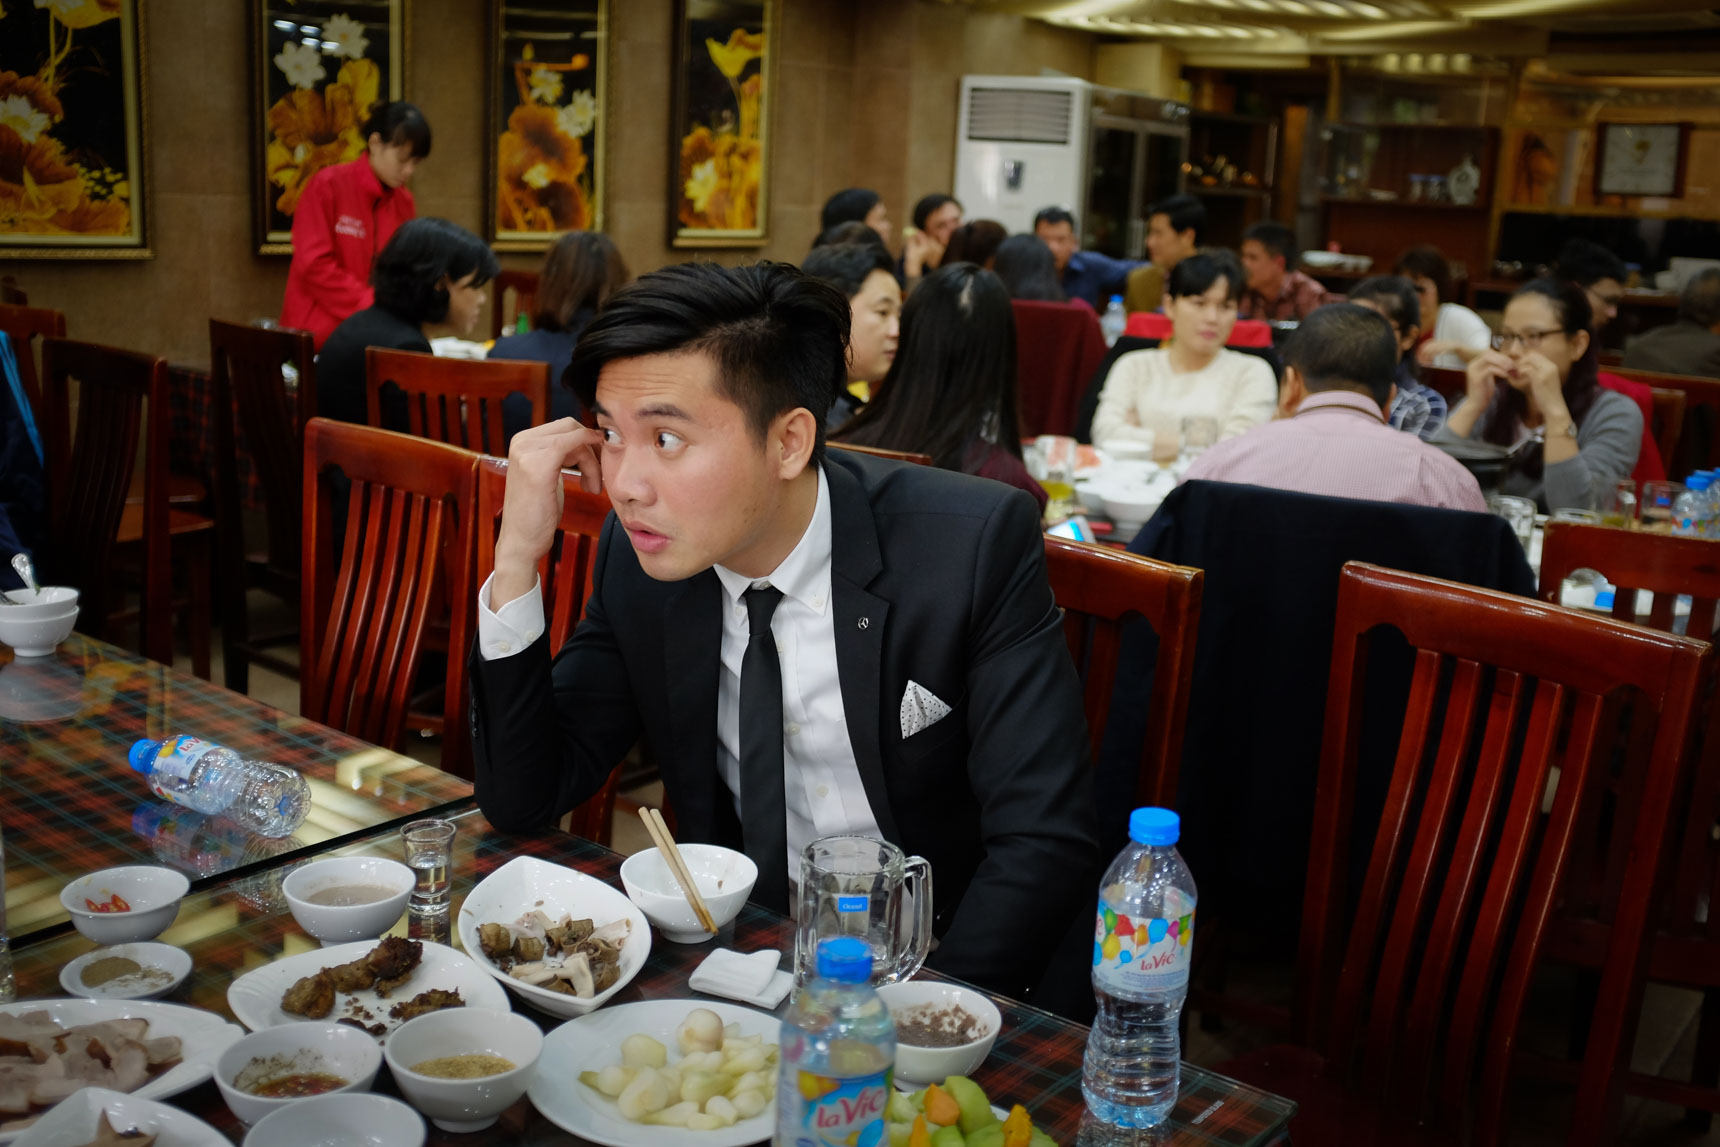 Business Lunch, Cầu Giấy District